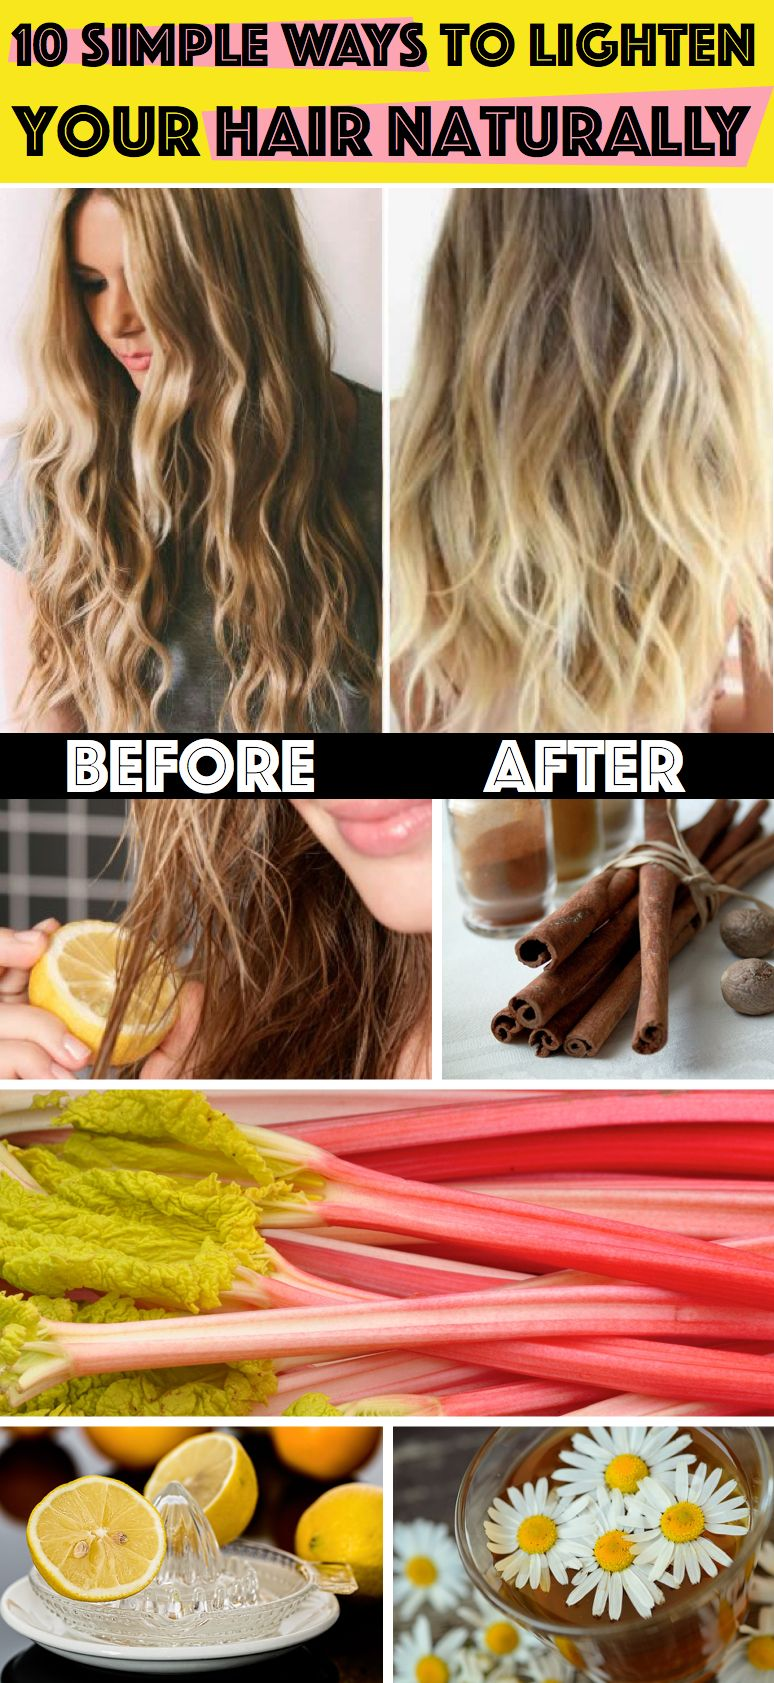 10 Amazingly Simple Ways To Lighten Your Hair Naturally Life Hacks